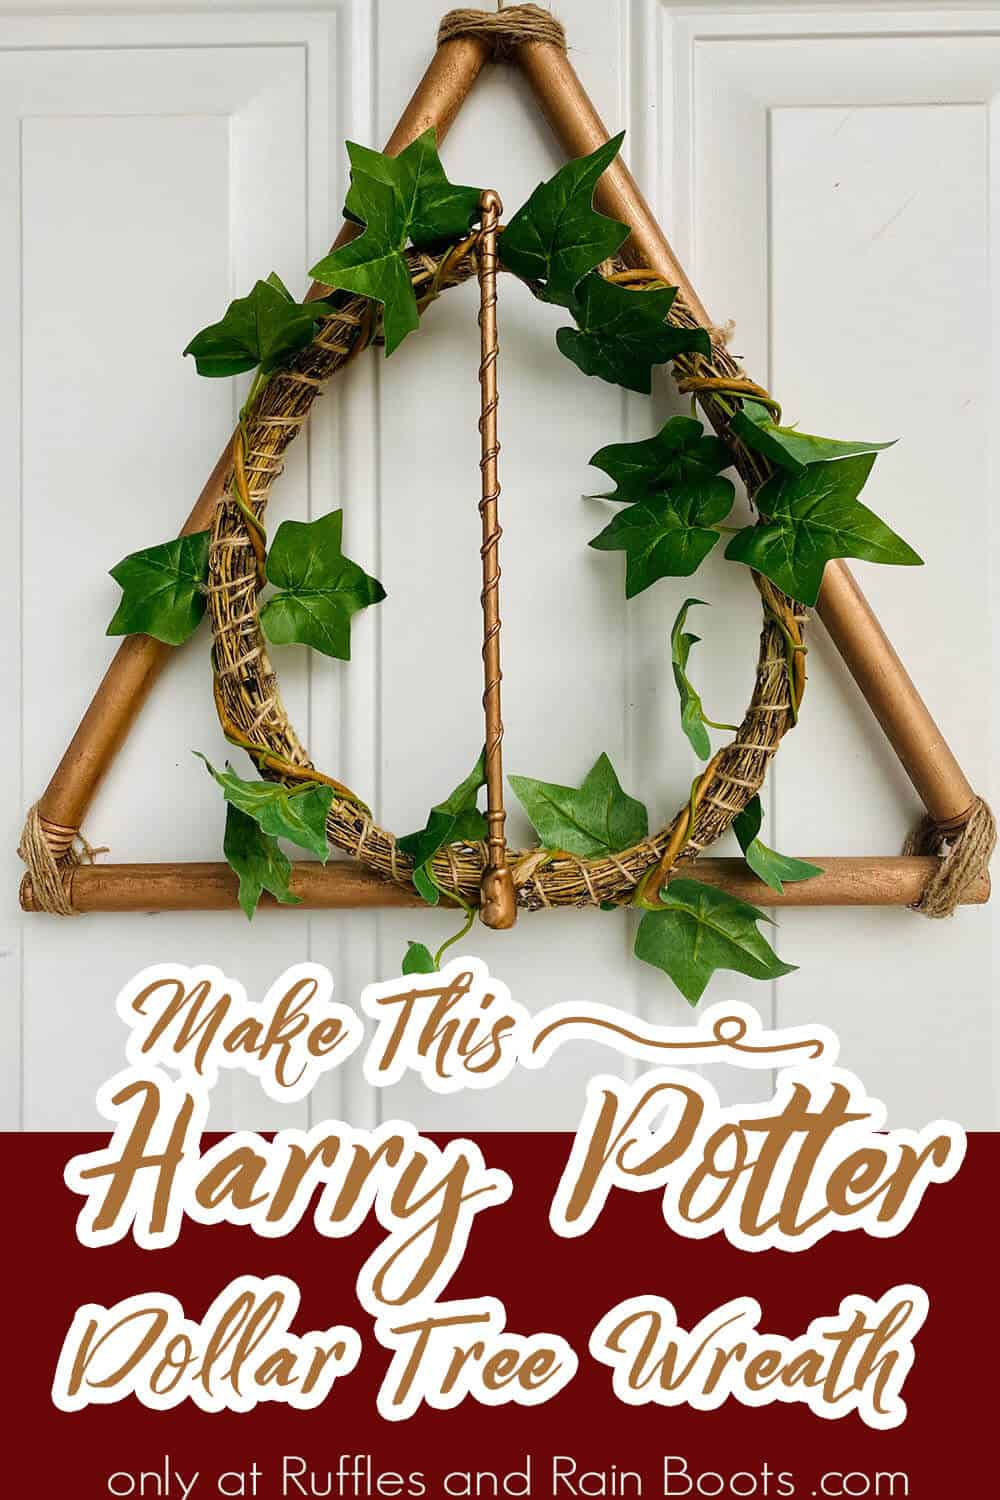 dollar store harry potter always wreath with text which reads make this harry potter dollar tree wreath